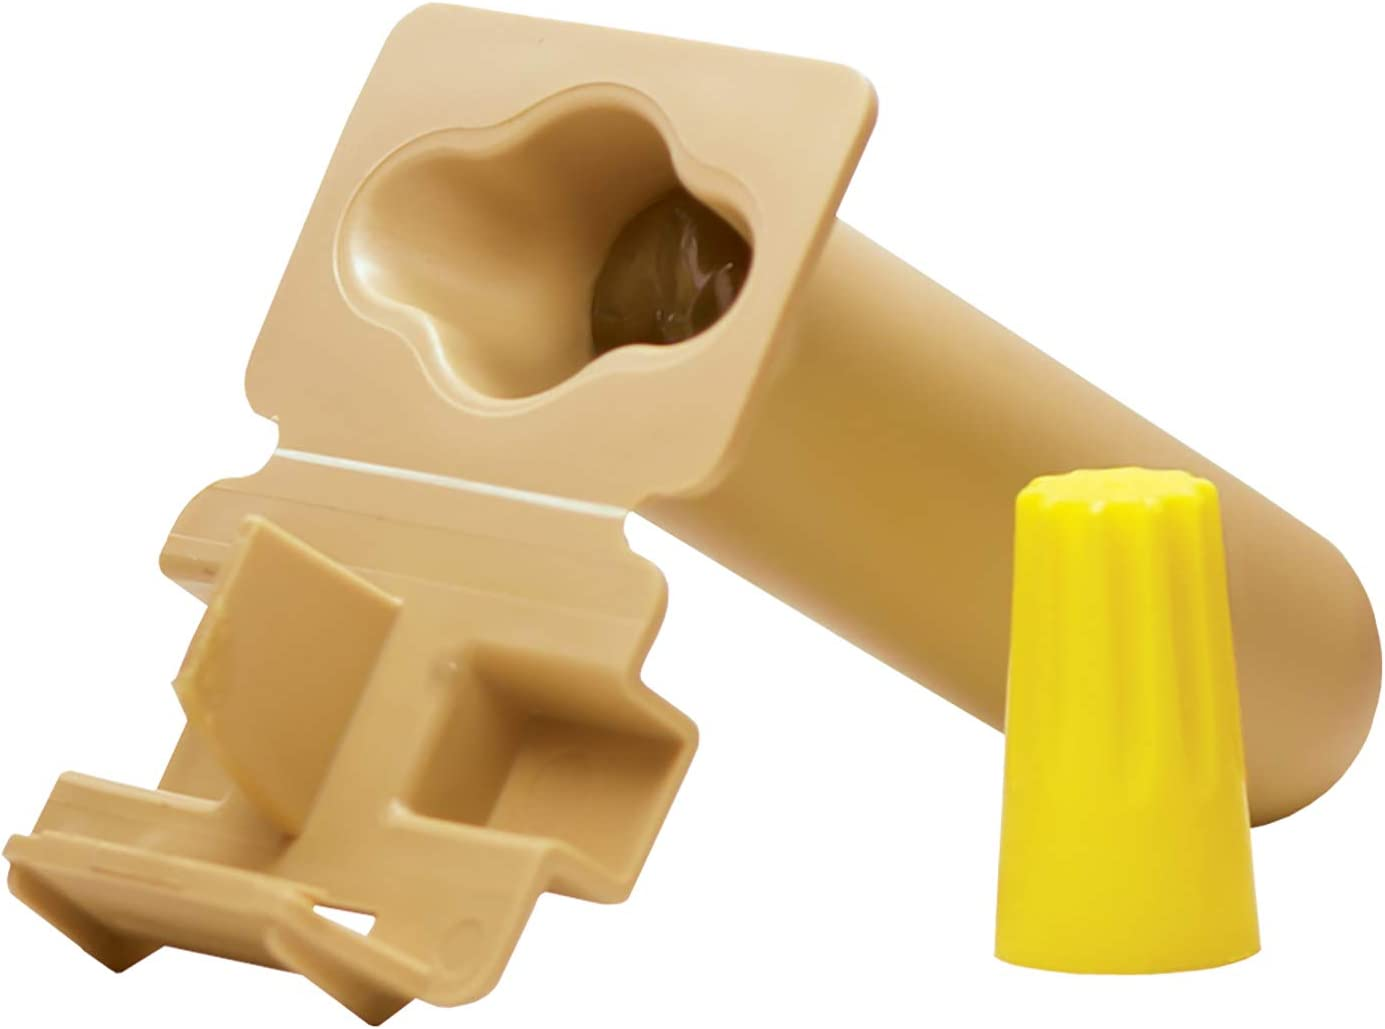 King Innovation DryConn Dry-Splice Connector with Crimp Sleeve pre-Filled -Package of 25